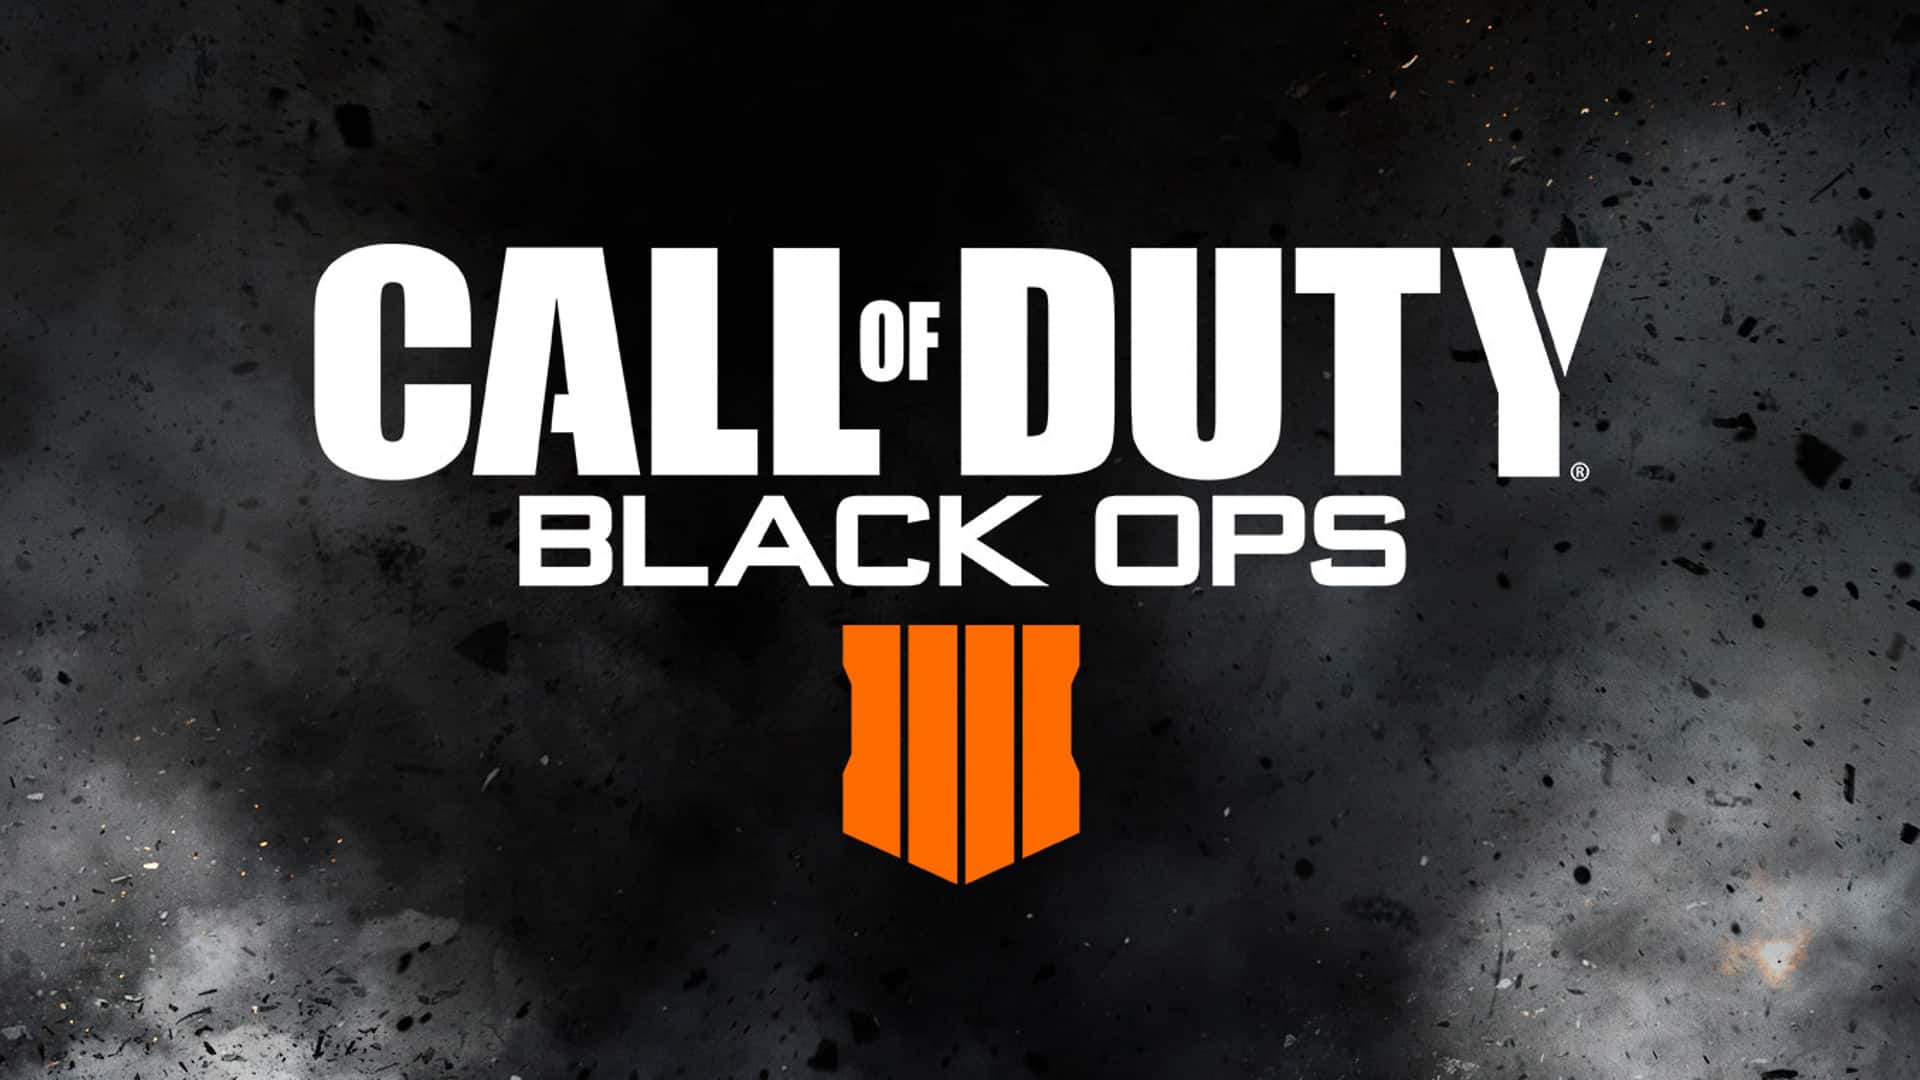 Call of Duty: Black Ops 4 might use Blizzard's Battle.net